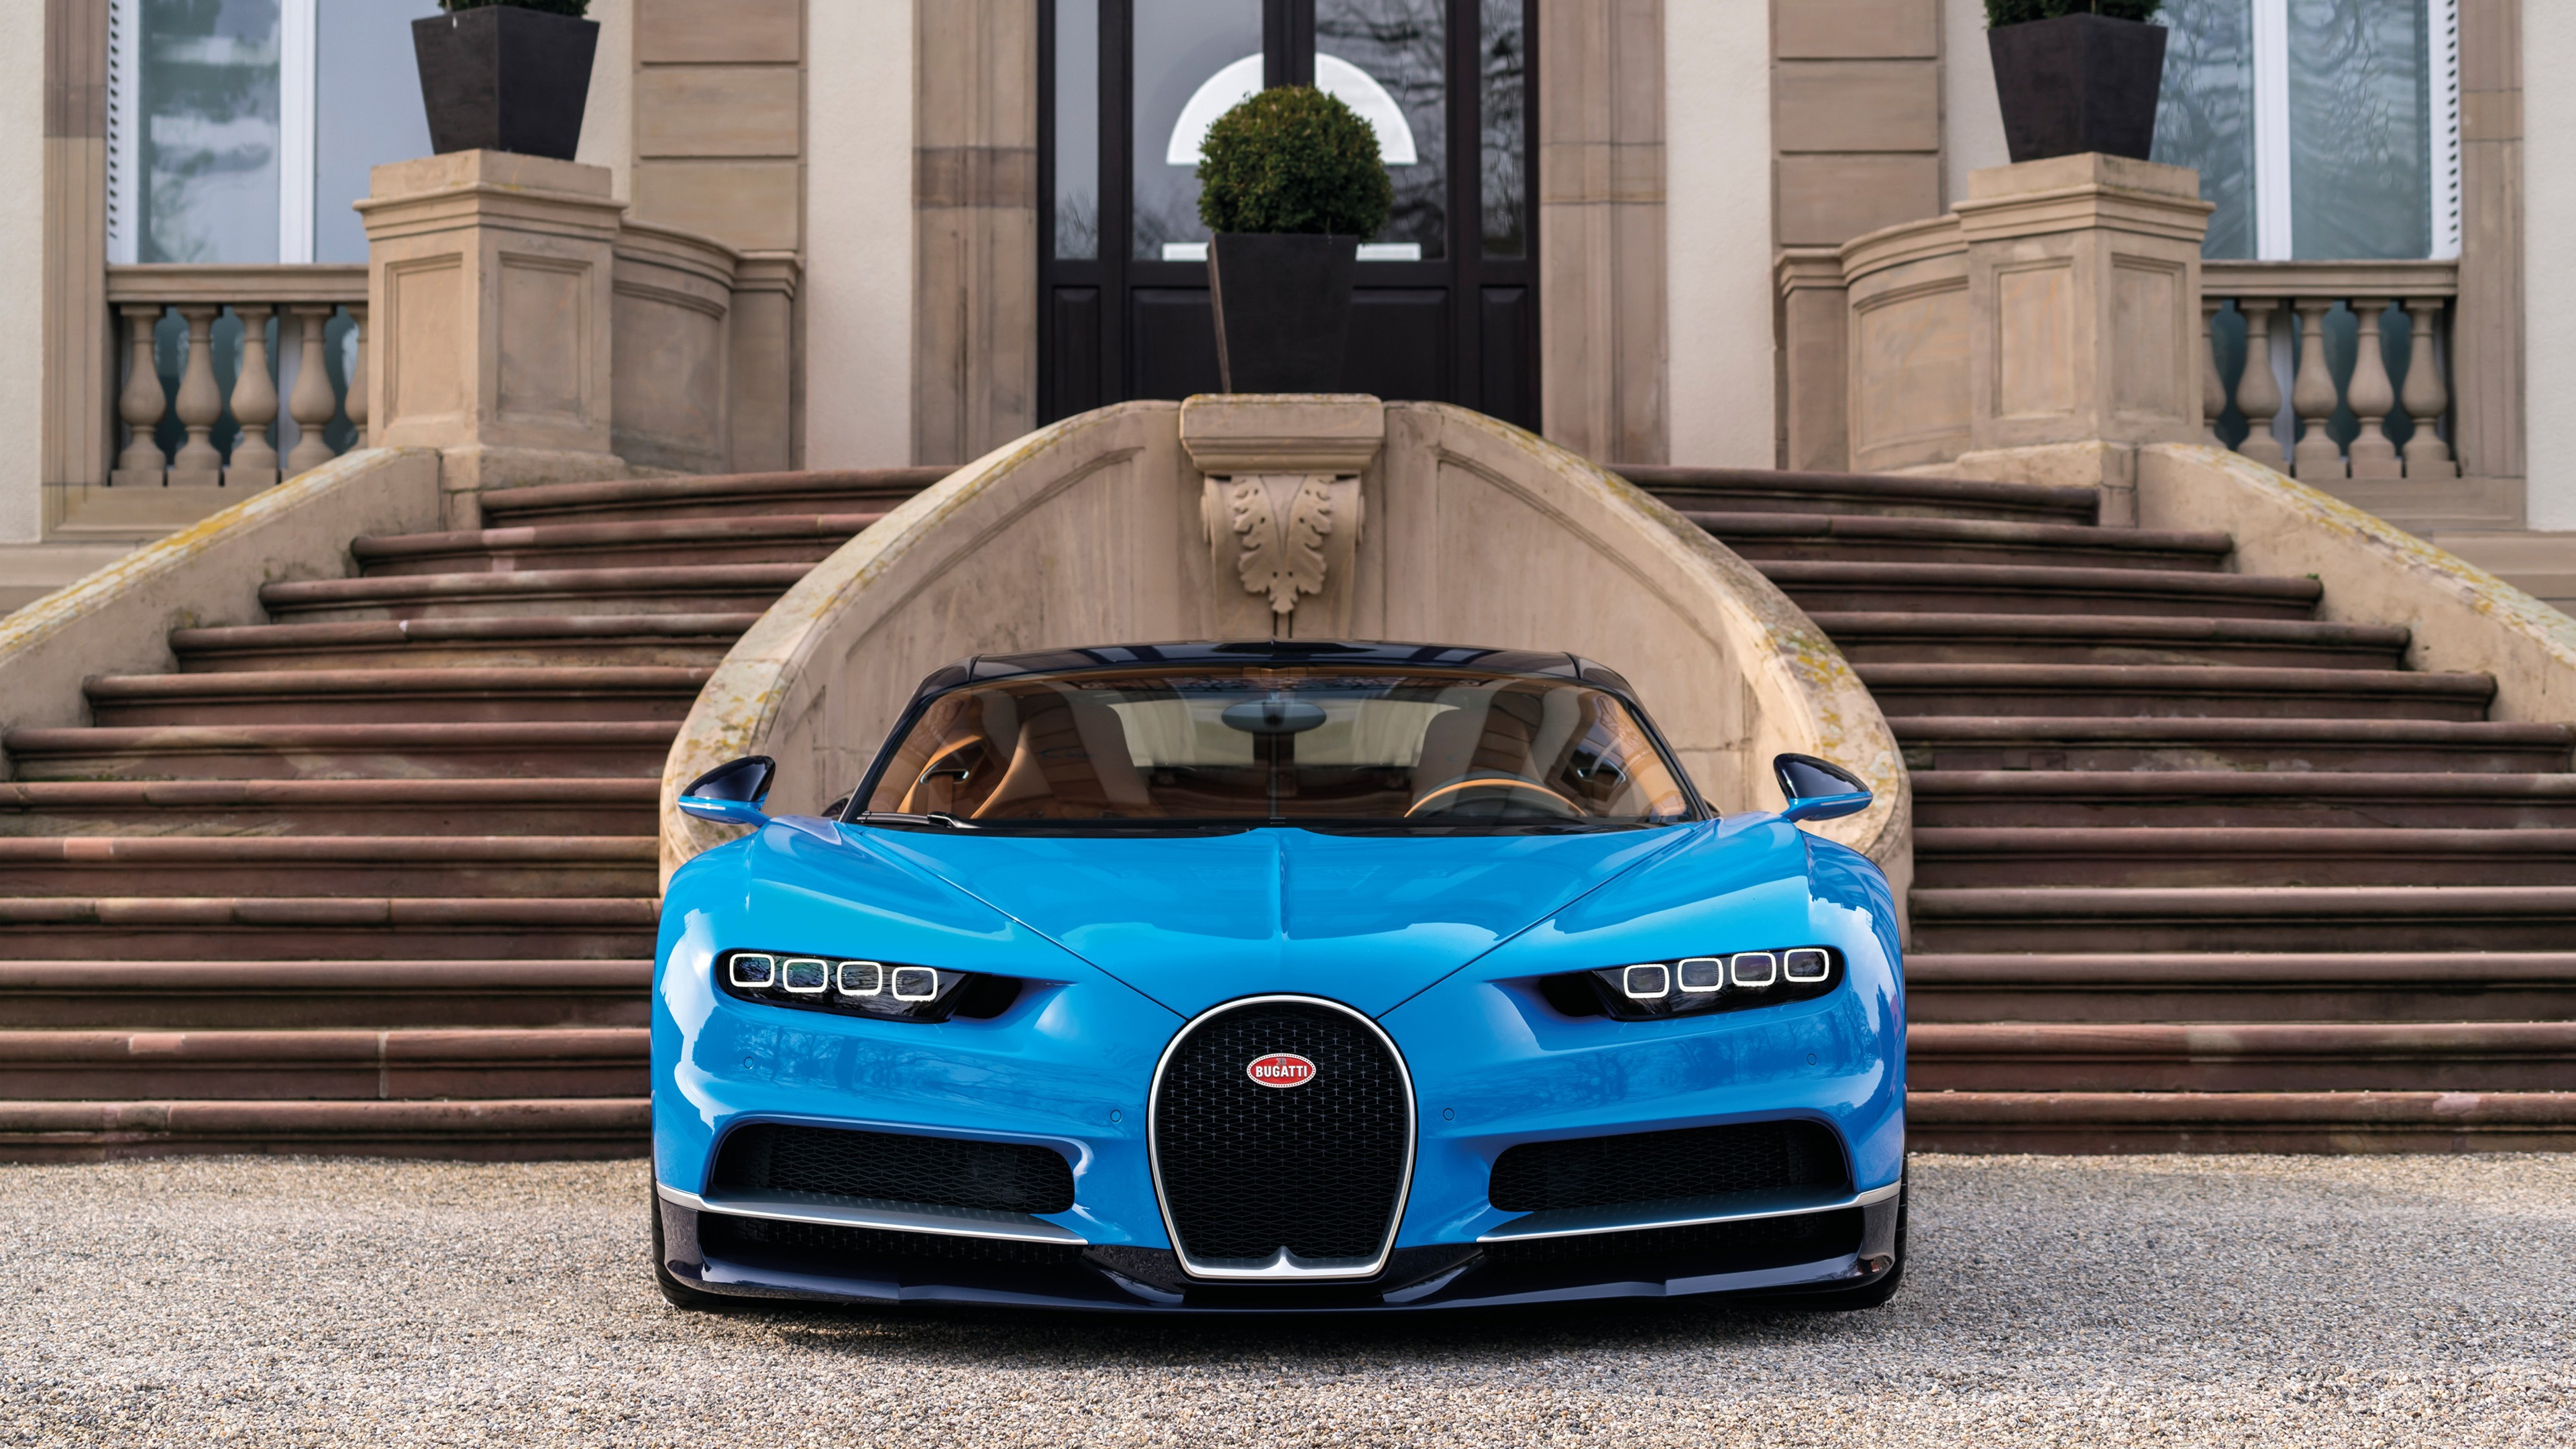 2017 bugatti chiron geneva auto show 2016 wallpapers in jpg format